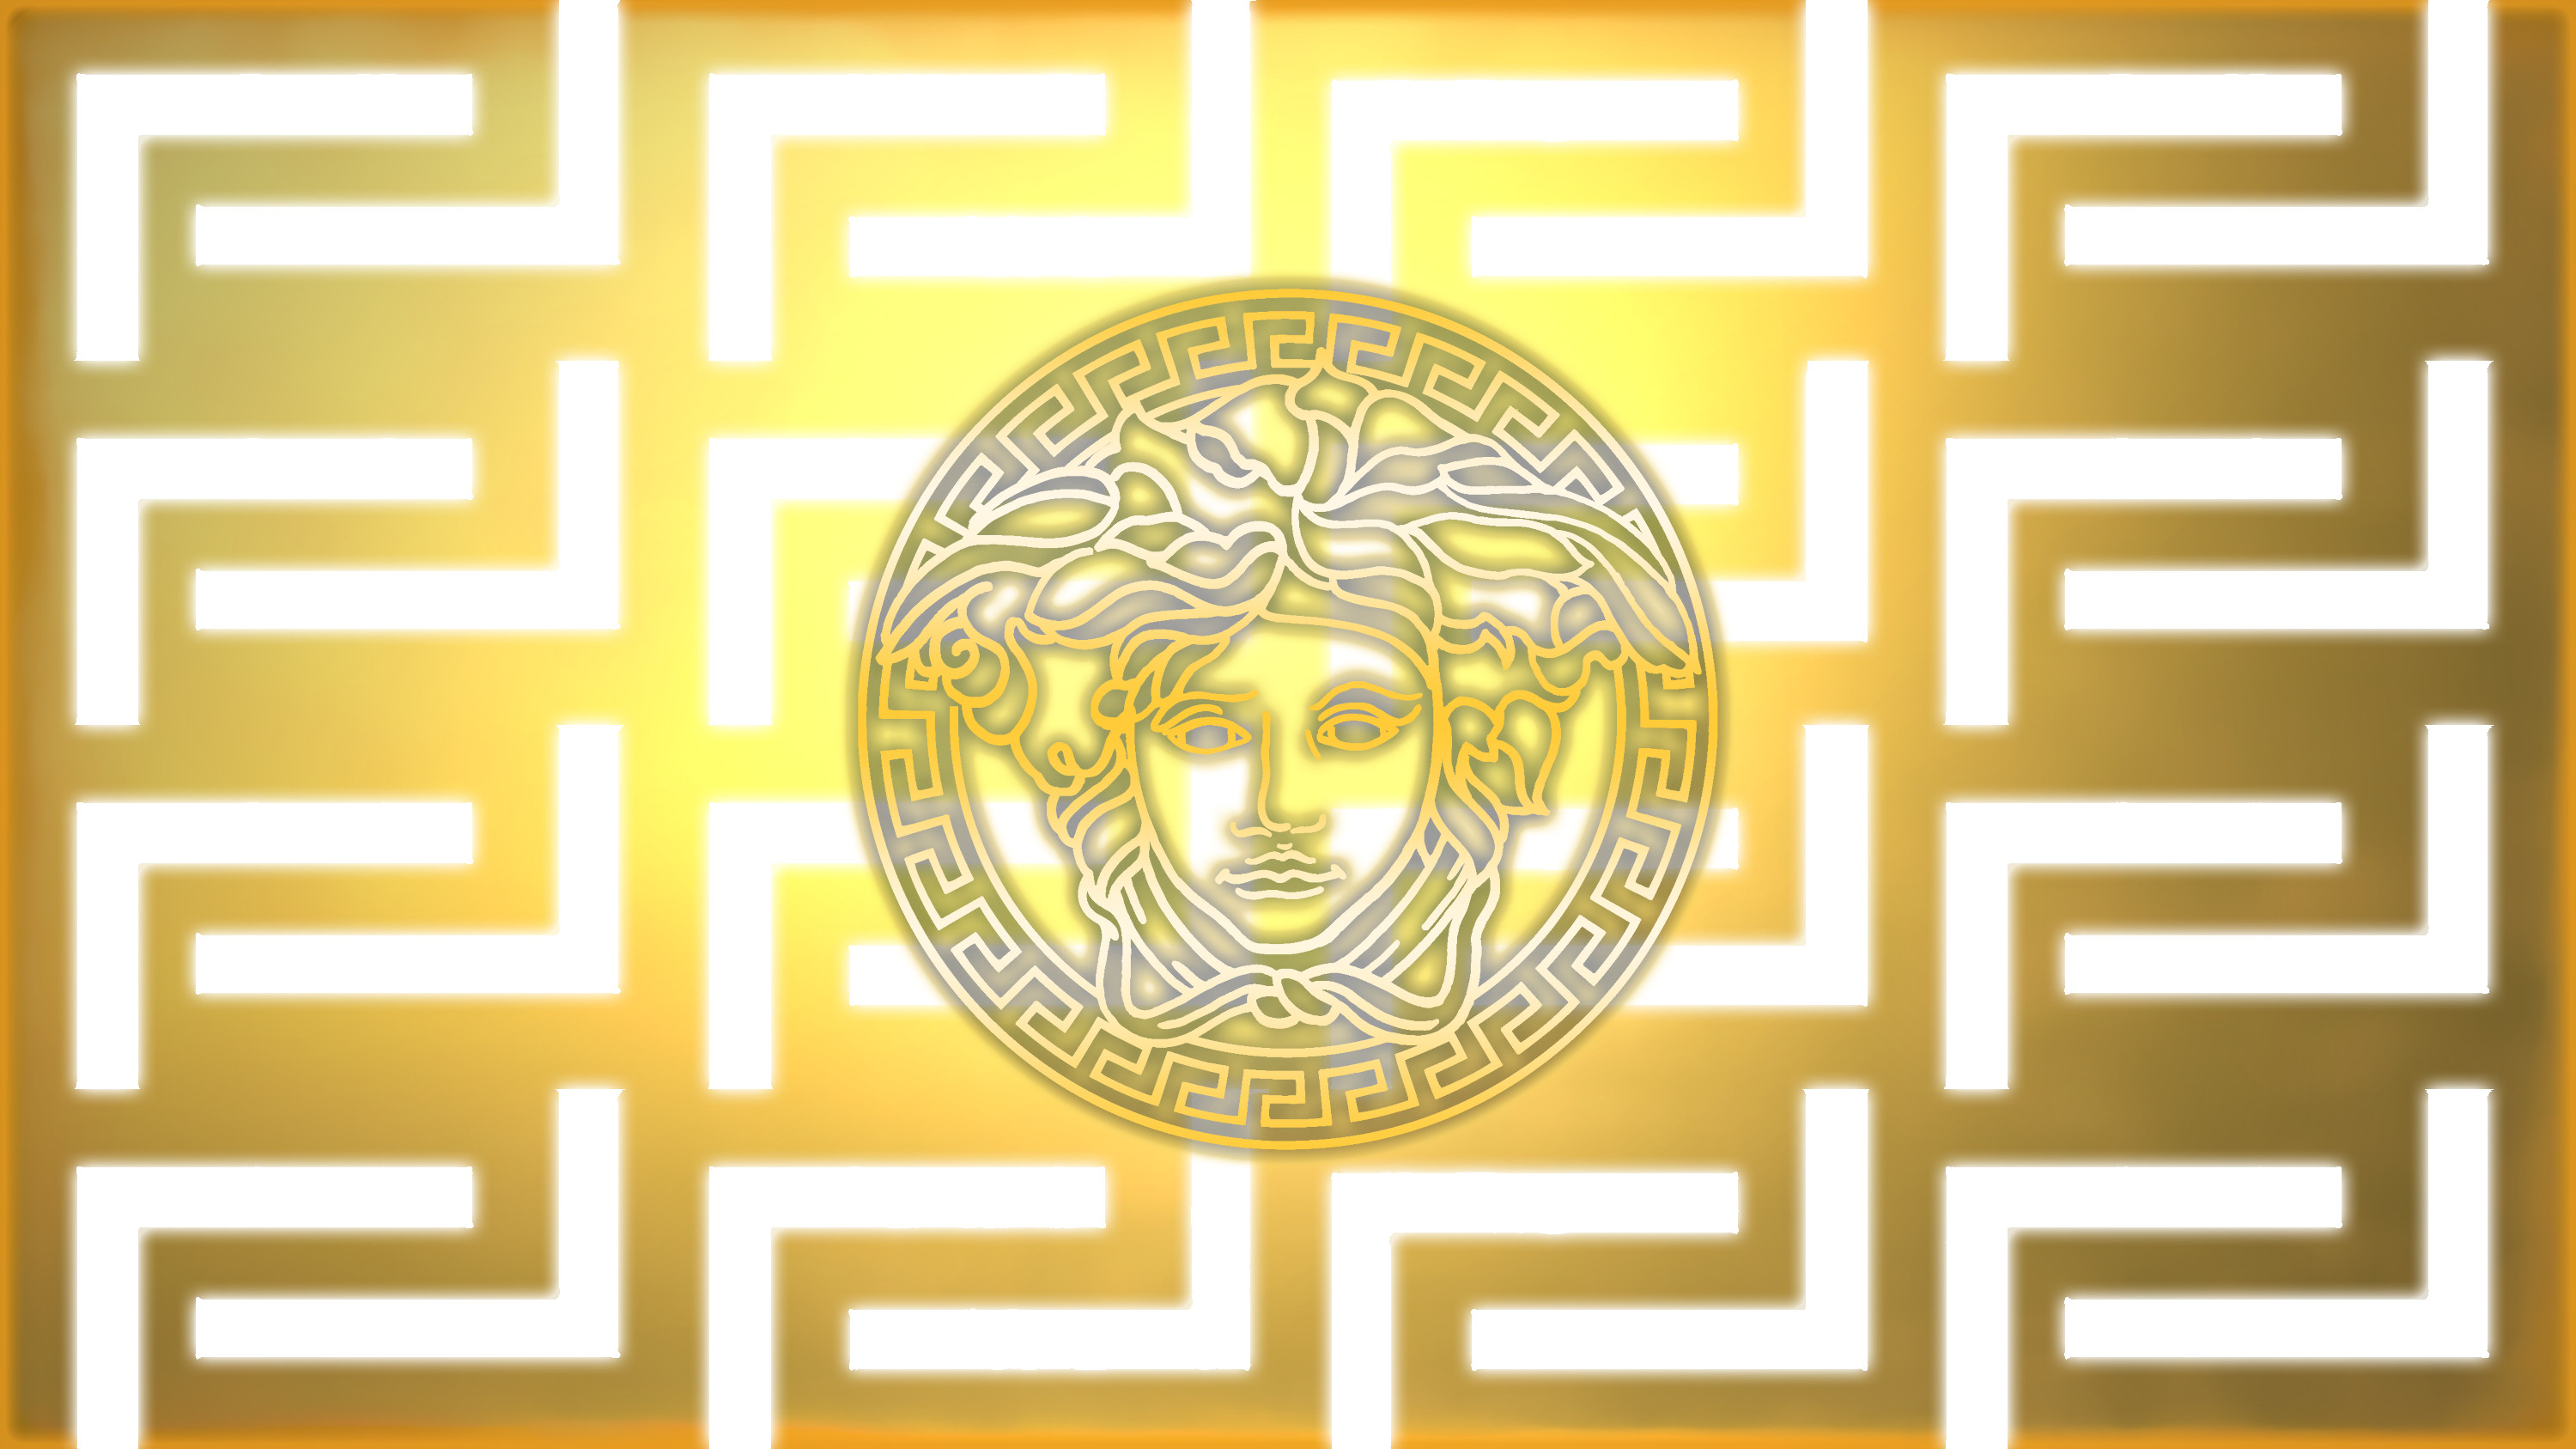 versace images free